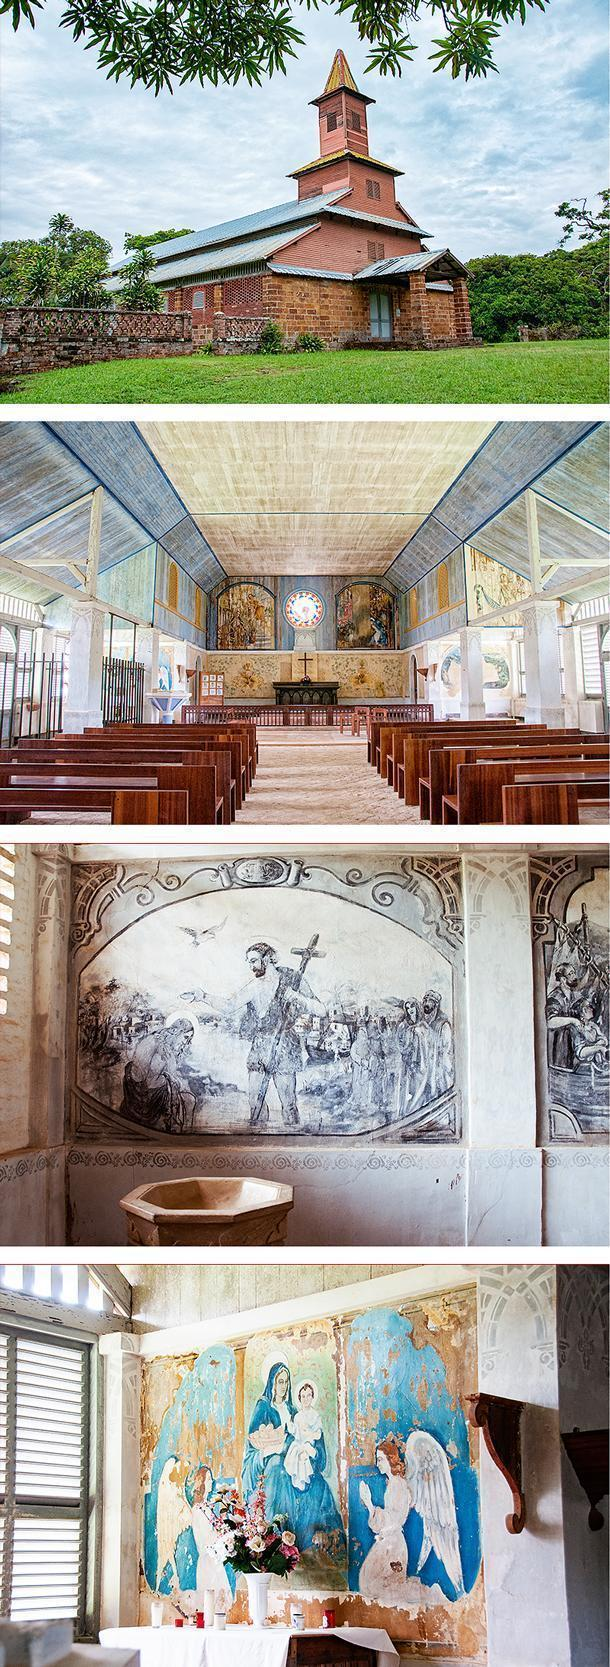 The chapel frescos are one of the highlights of the island